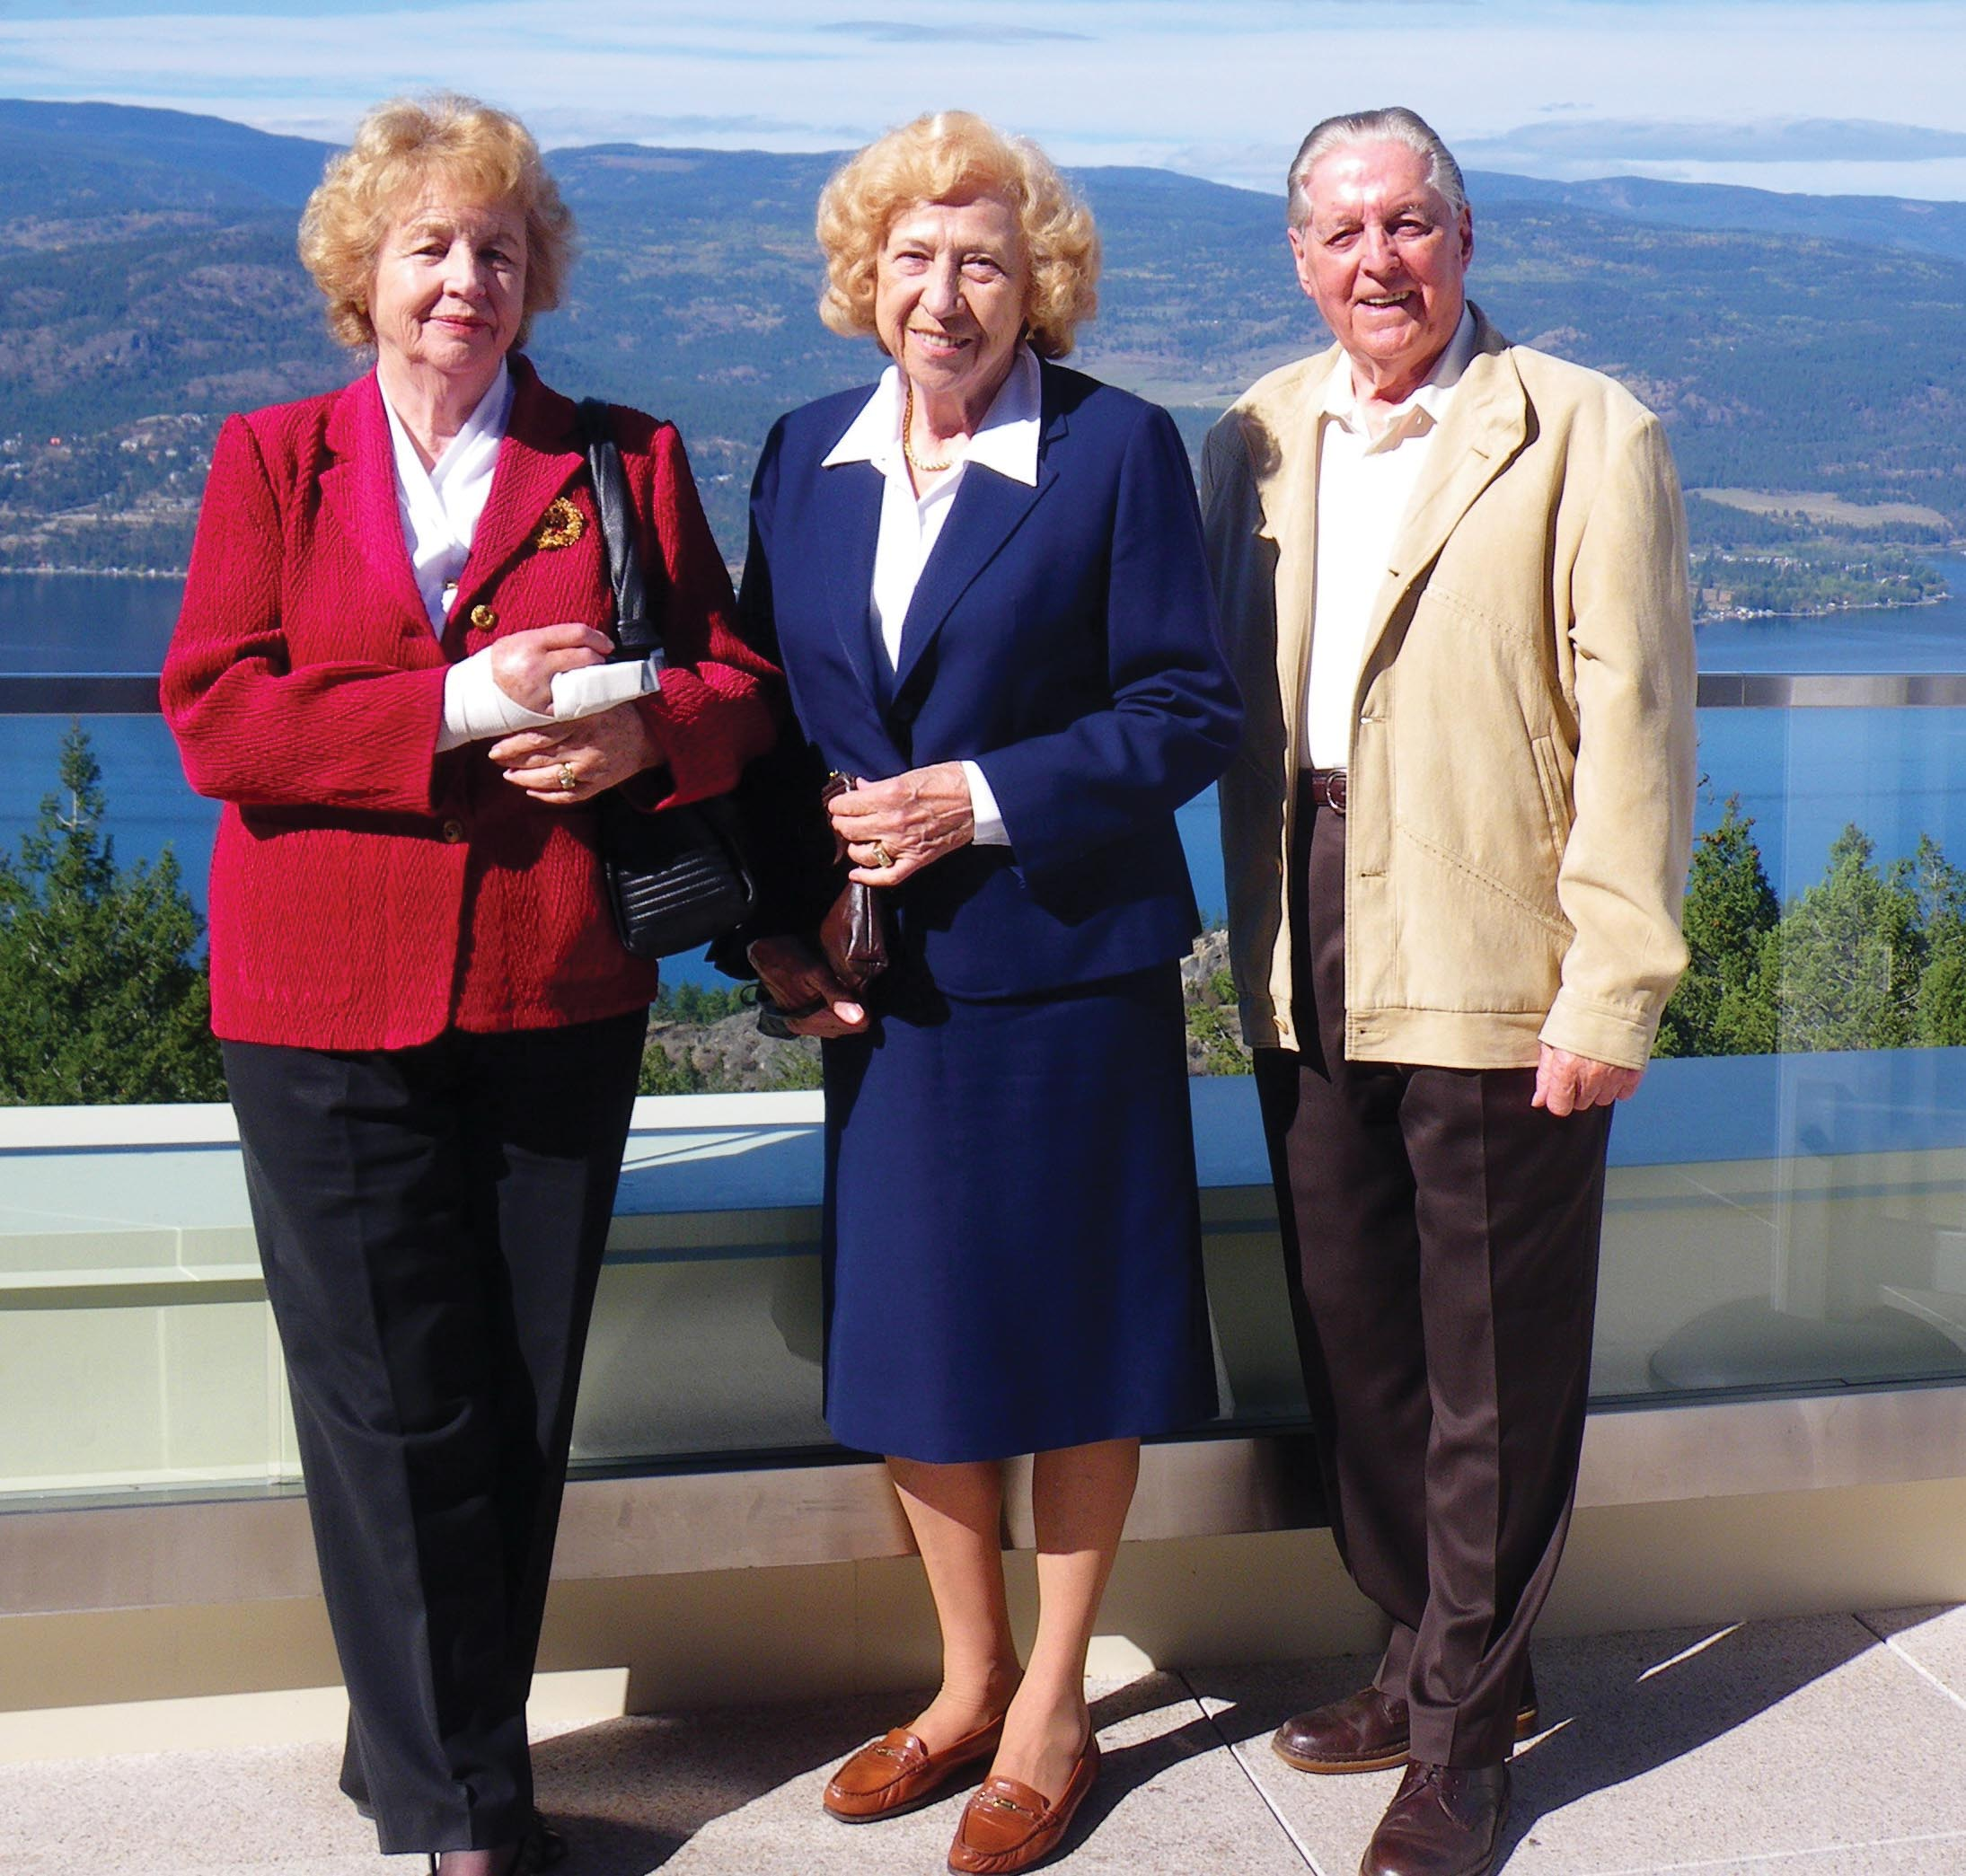 Josefine Hass, Trudy Wieczorek, and Otto Haas Photo courtesy of The Province